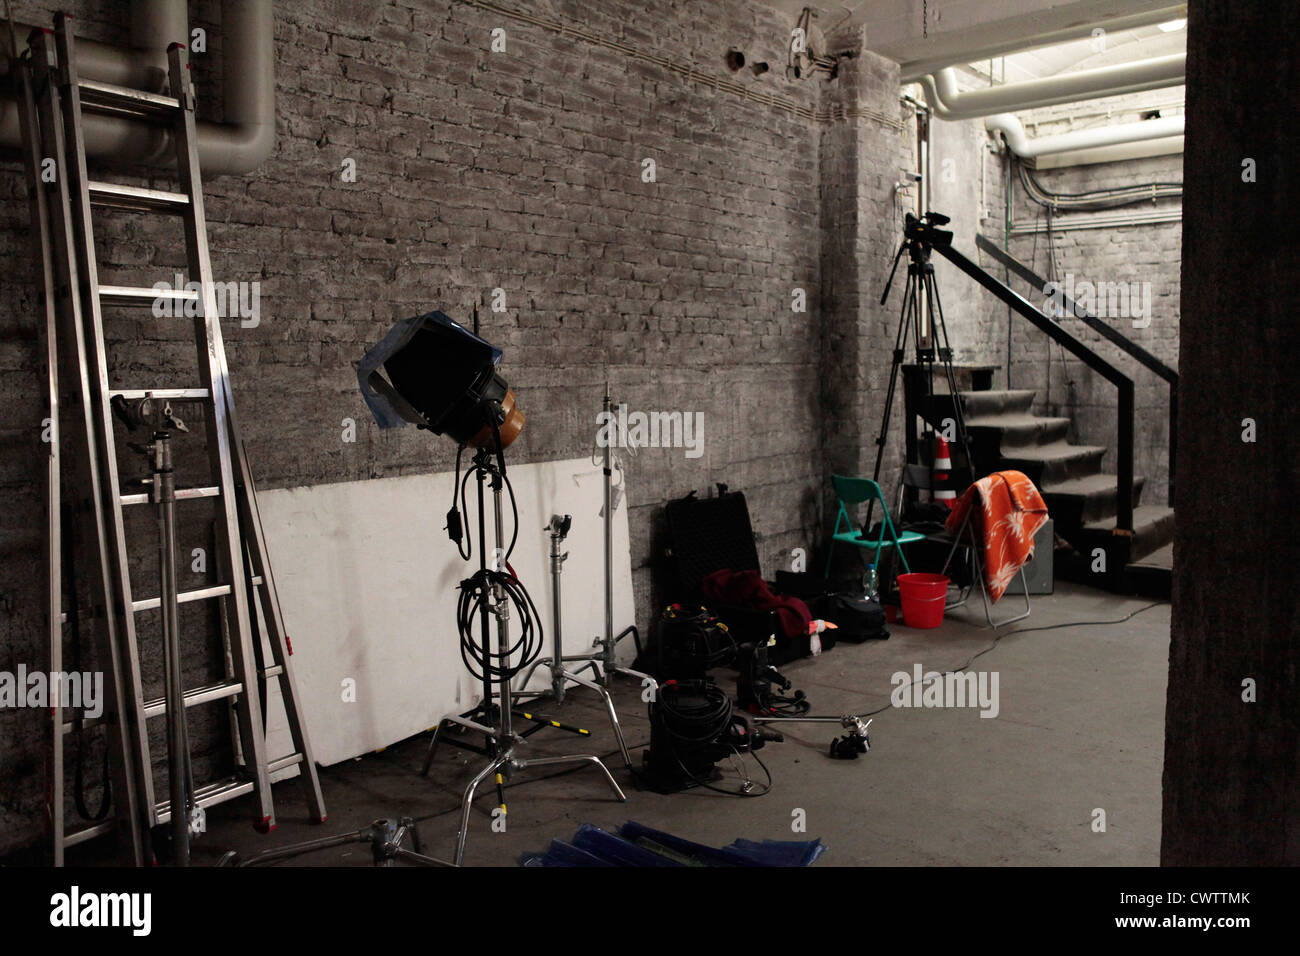 Backstage room - Stock Image